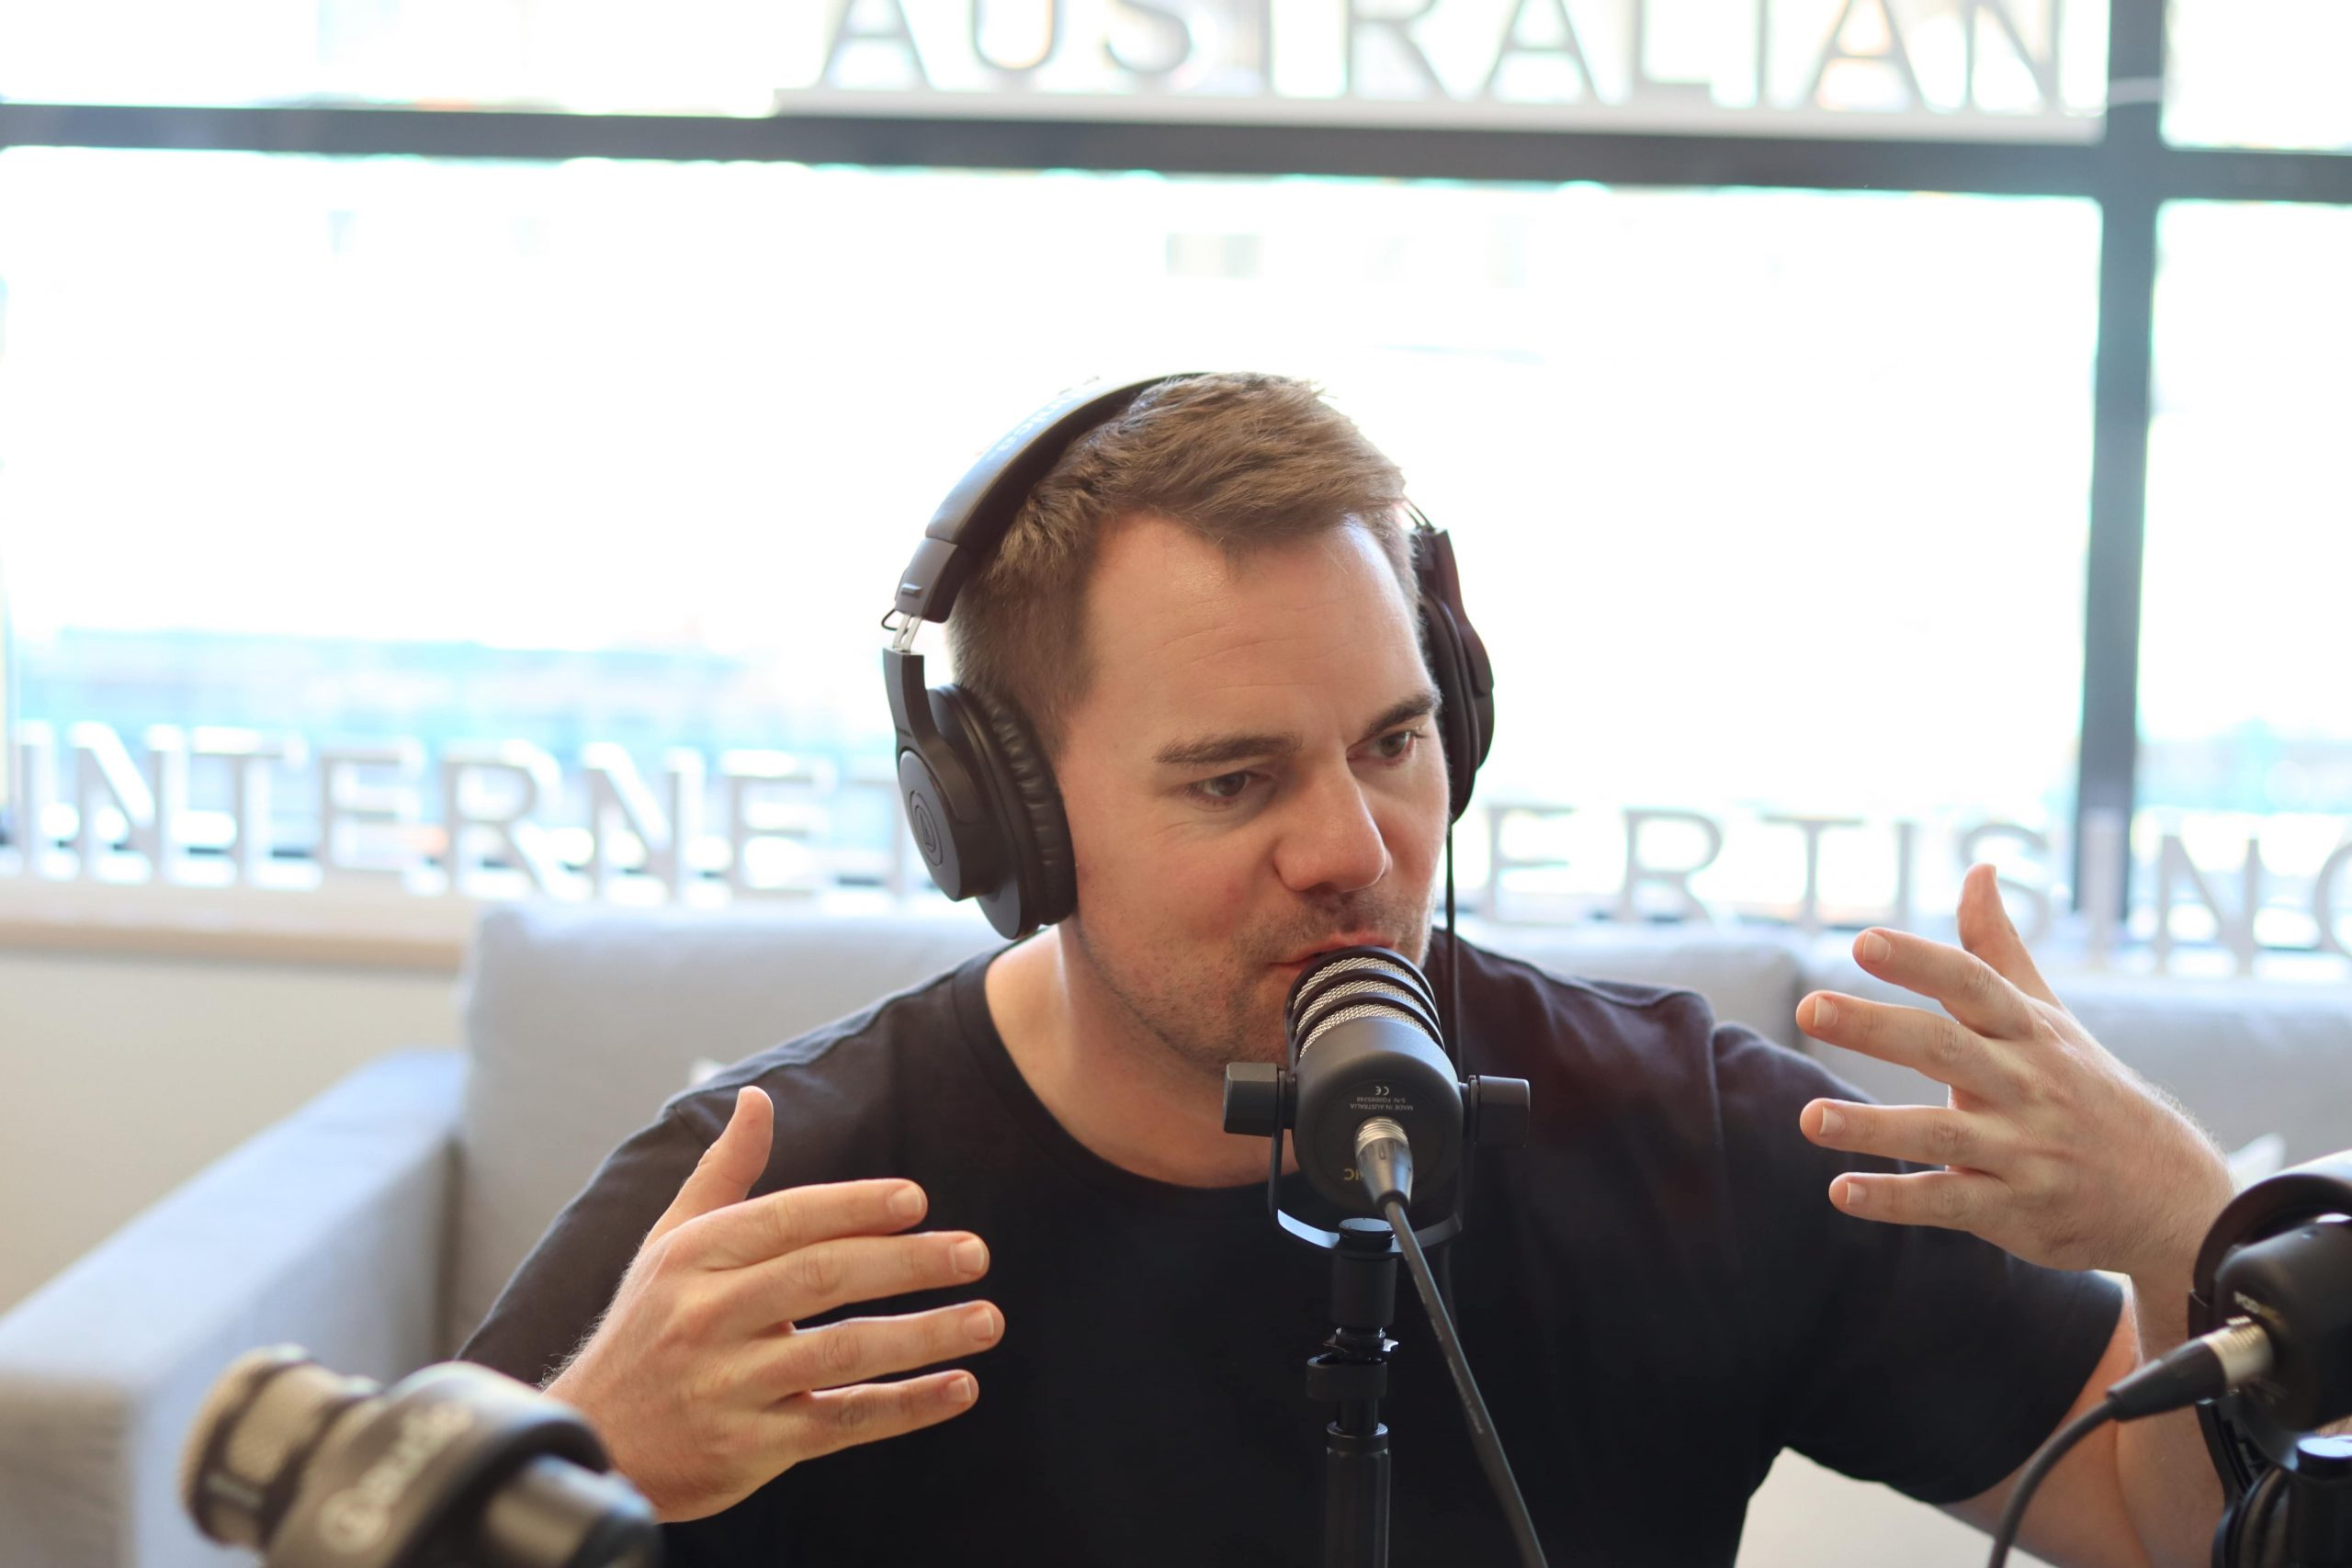 Episode 3 With Rossi Alexander and Joe Phillimore | AIA